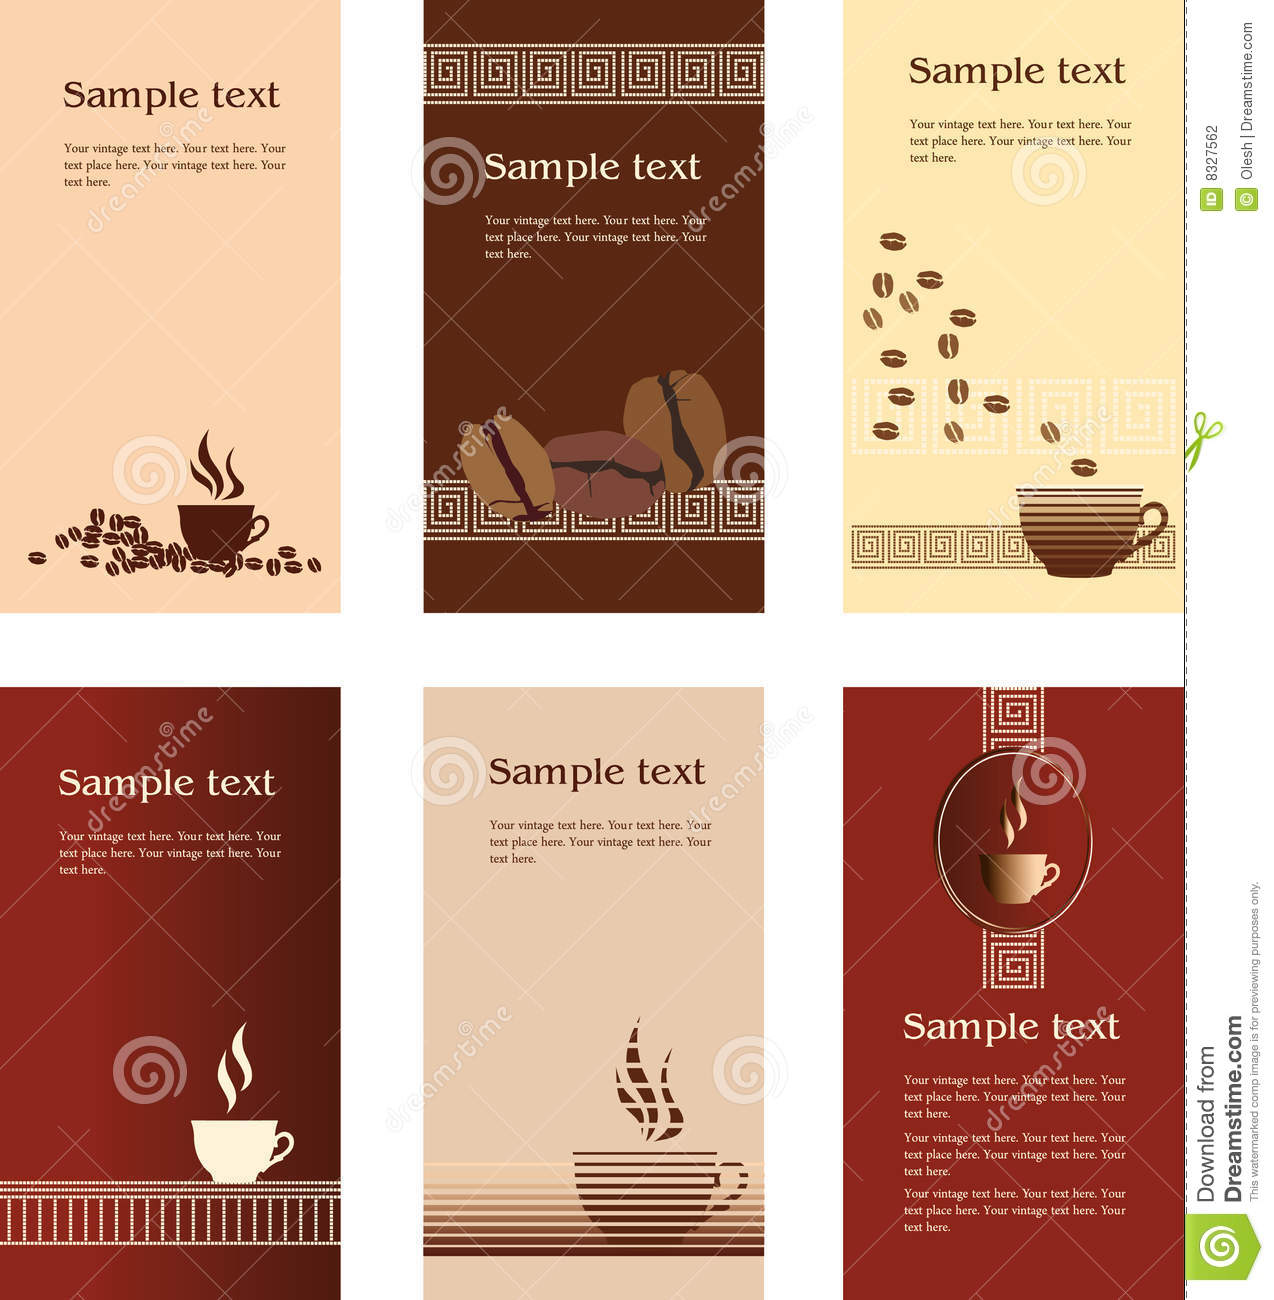 Coffee business card template stock vector illustration of template designs of business card for coffee shop royalty free illustration accmission Gallery